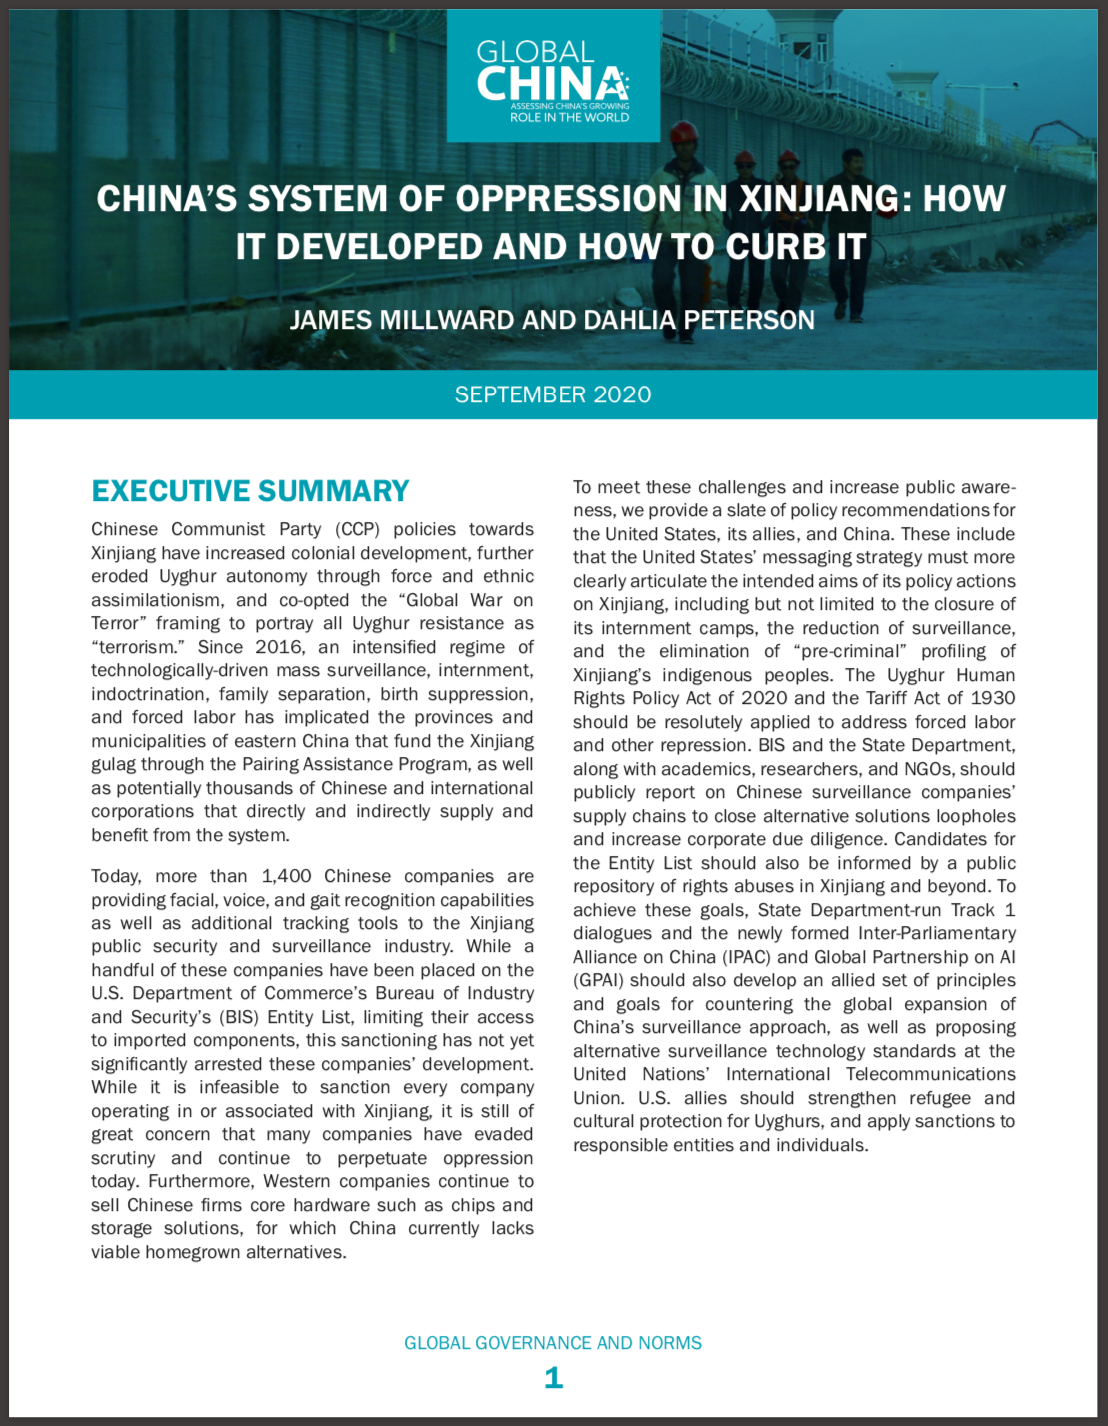 China's System of Oppression Report Cover